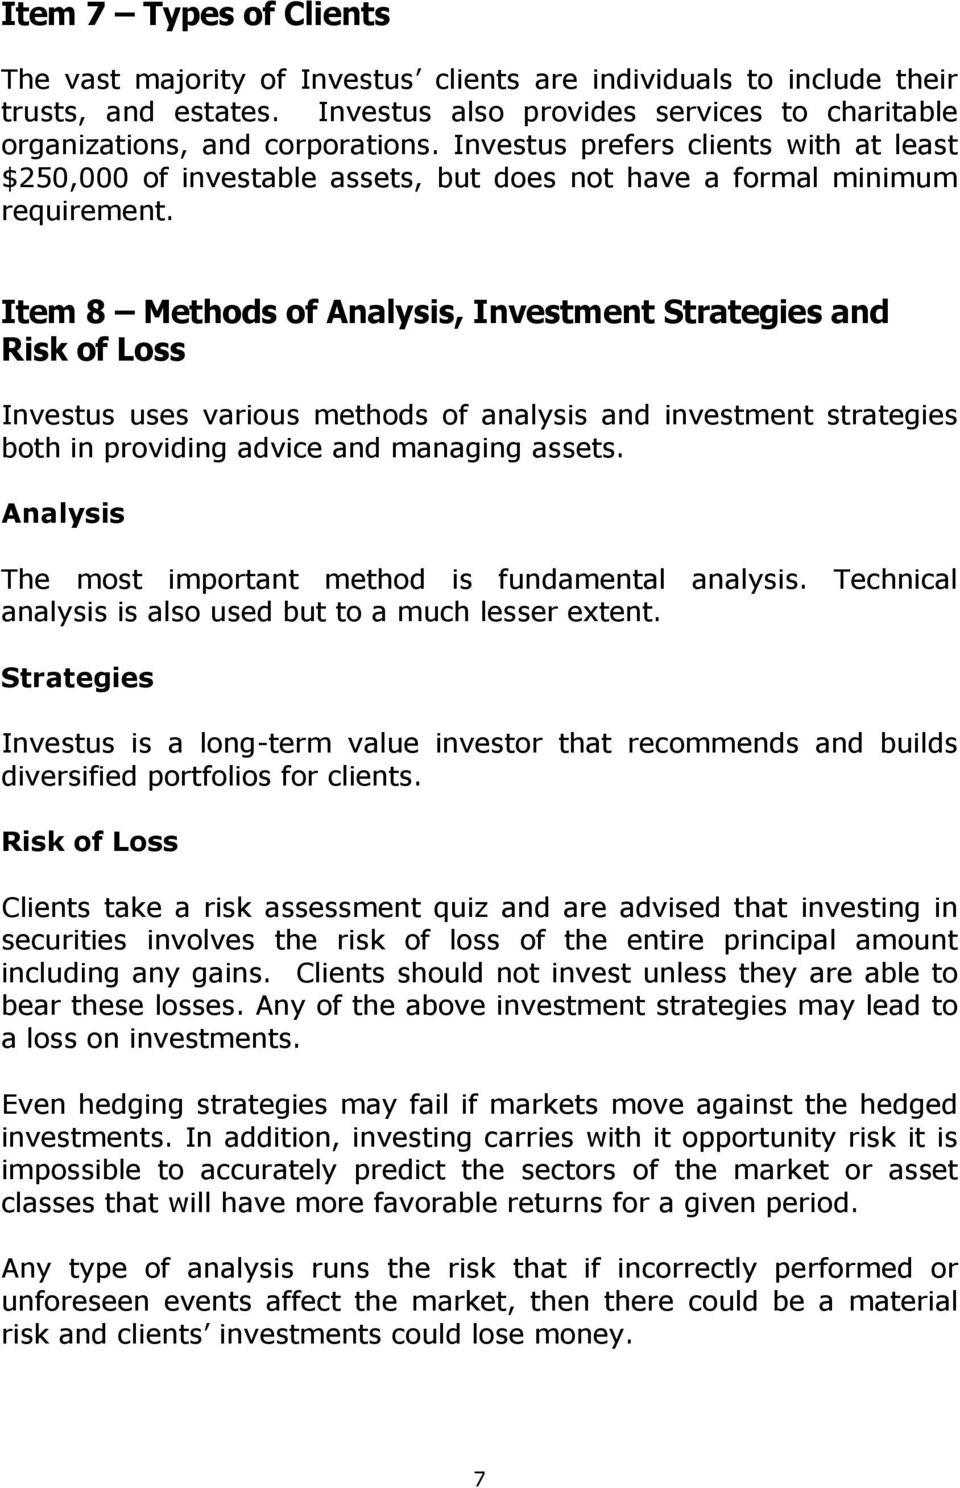 Item 8 Methods of Analysis, Investment Strategies and Risk of Loss Investus uses various methods of analysis and investment strategies both in providing advice and managing assets.